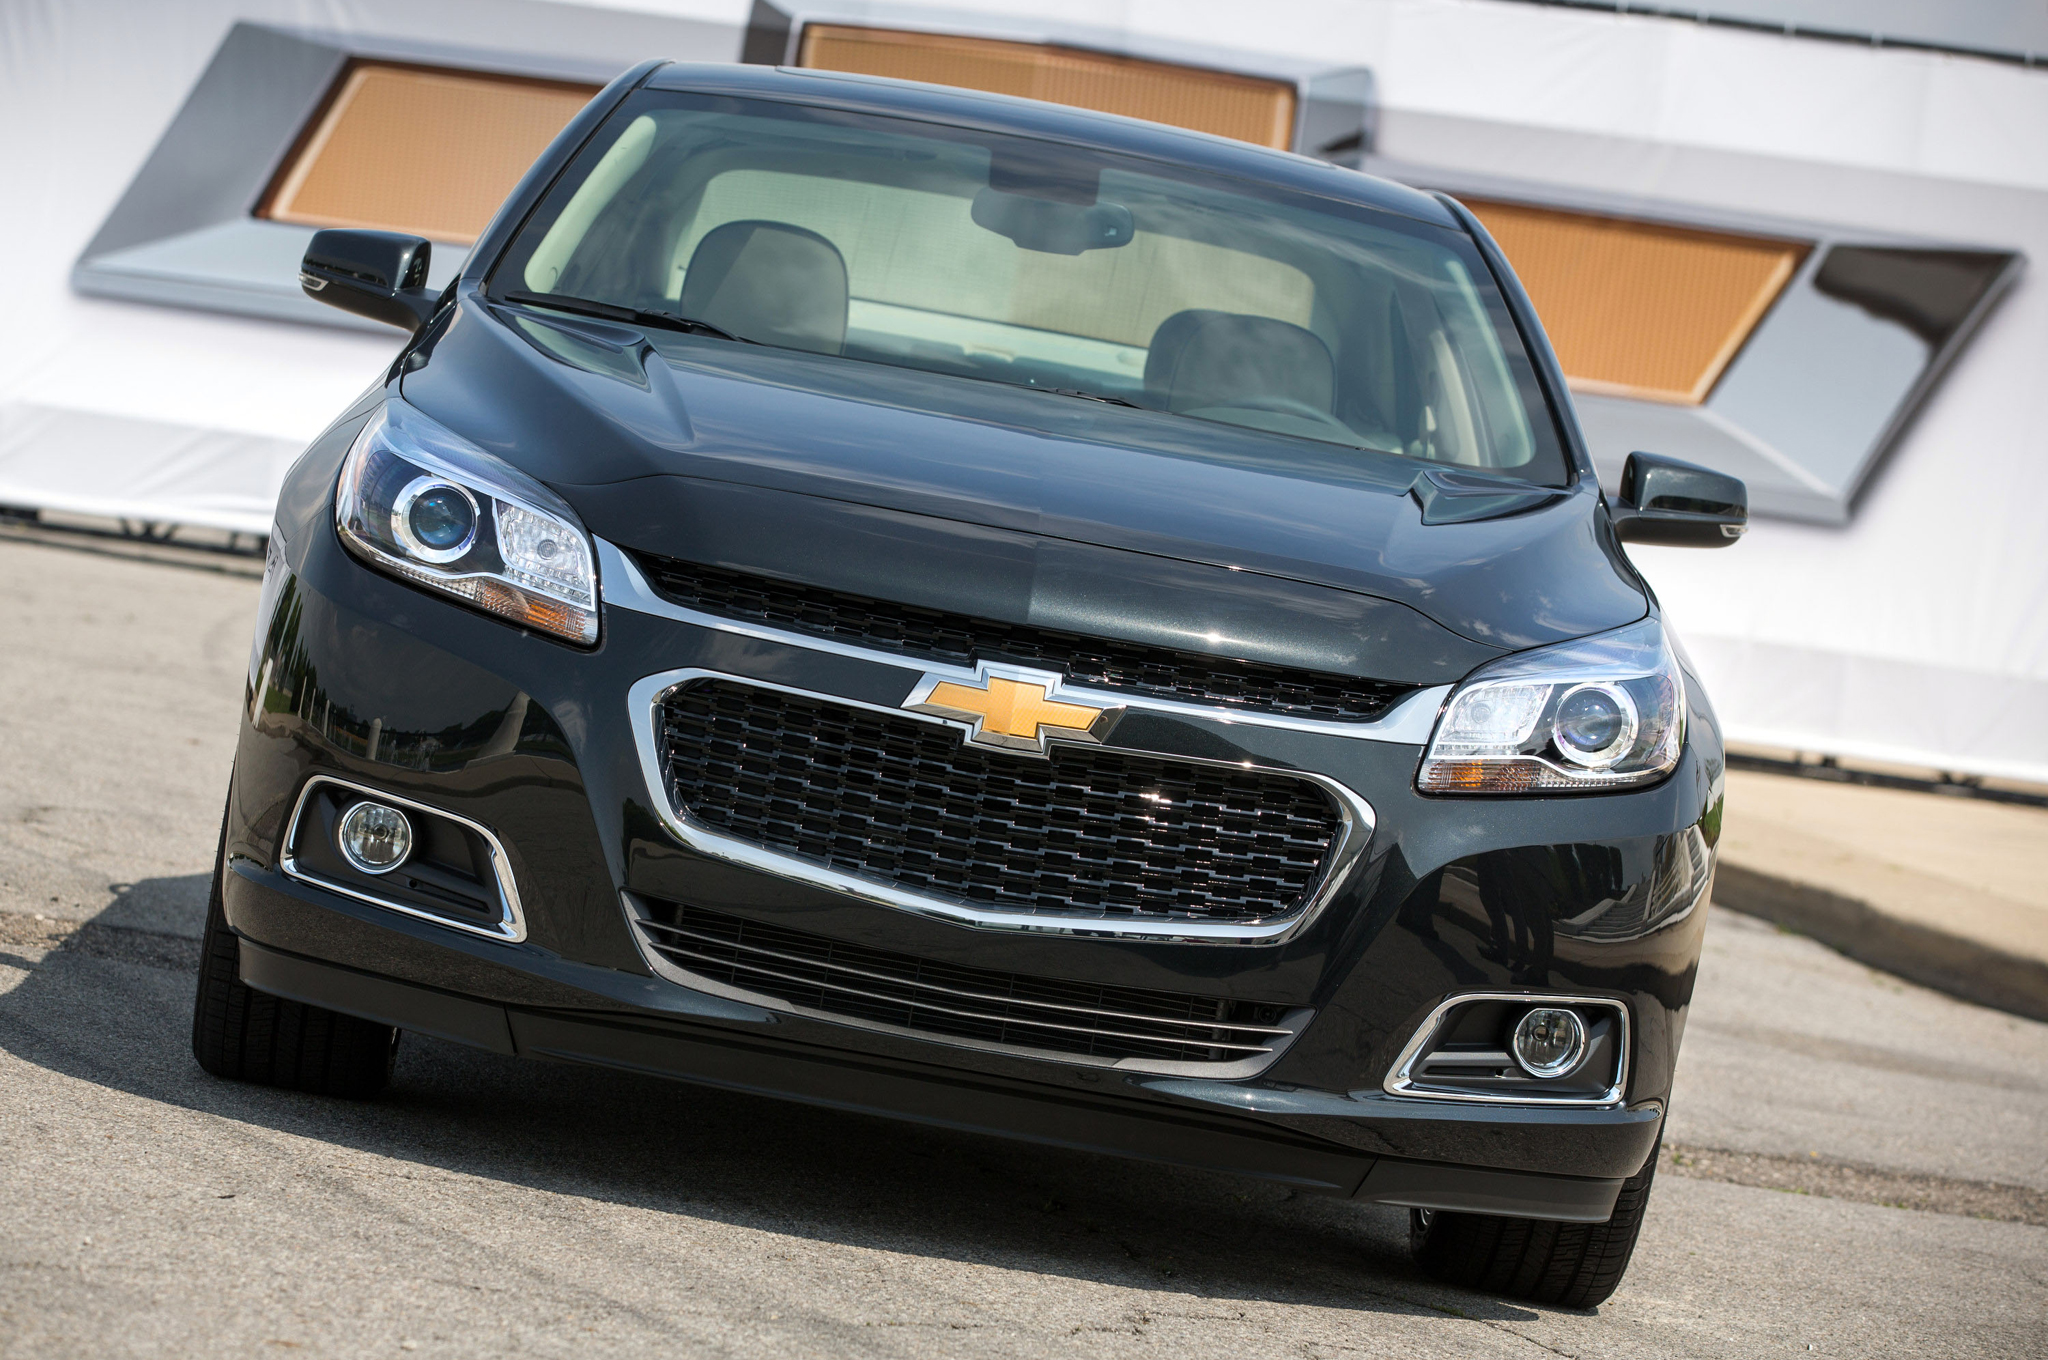 New Malibu has same fuel economy as Malibu Eco - McCluskey Automotive